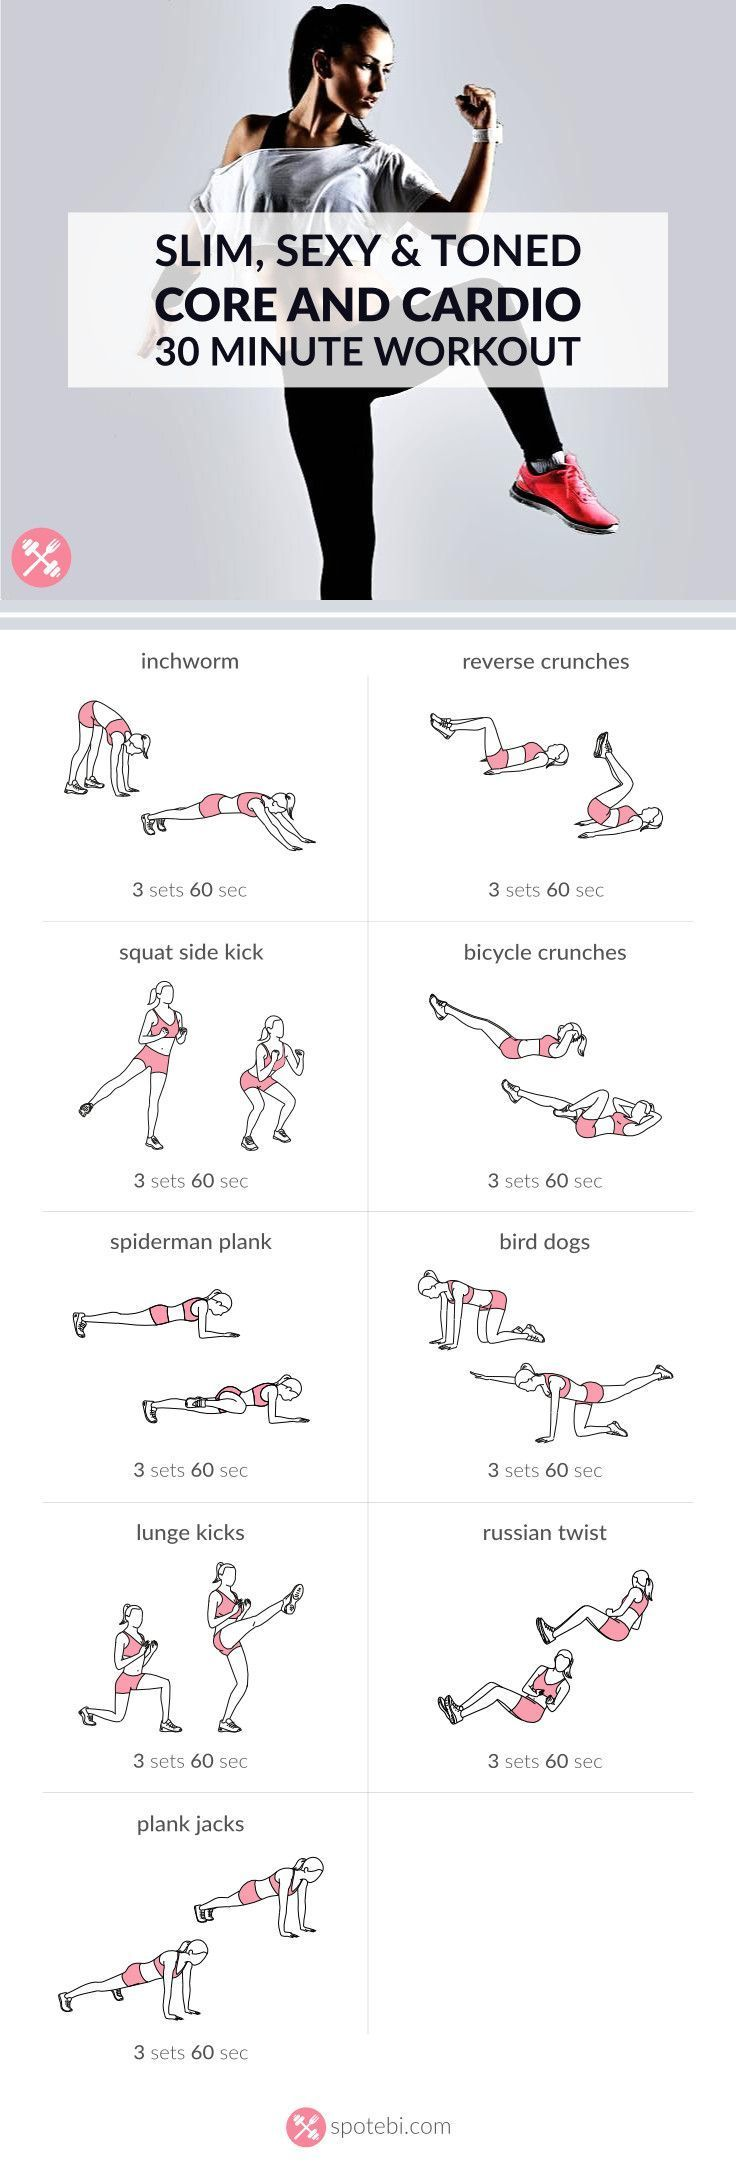 Workouts Work Your Abs Obliques And Lower Back With This Core